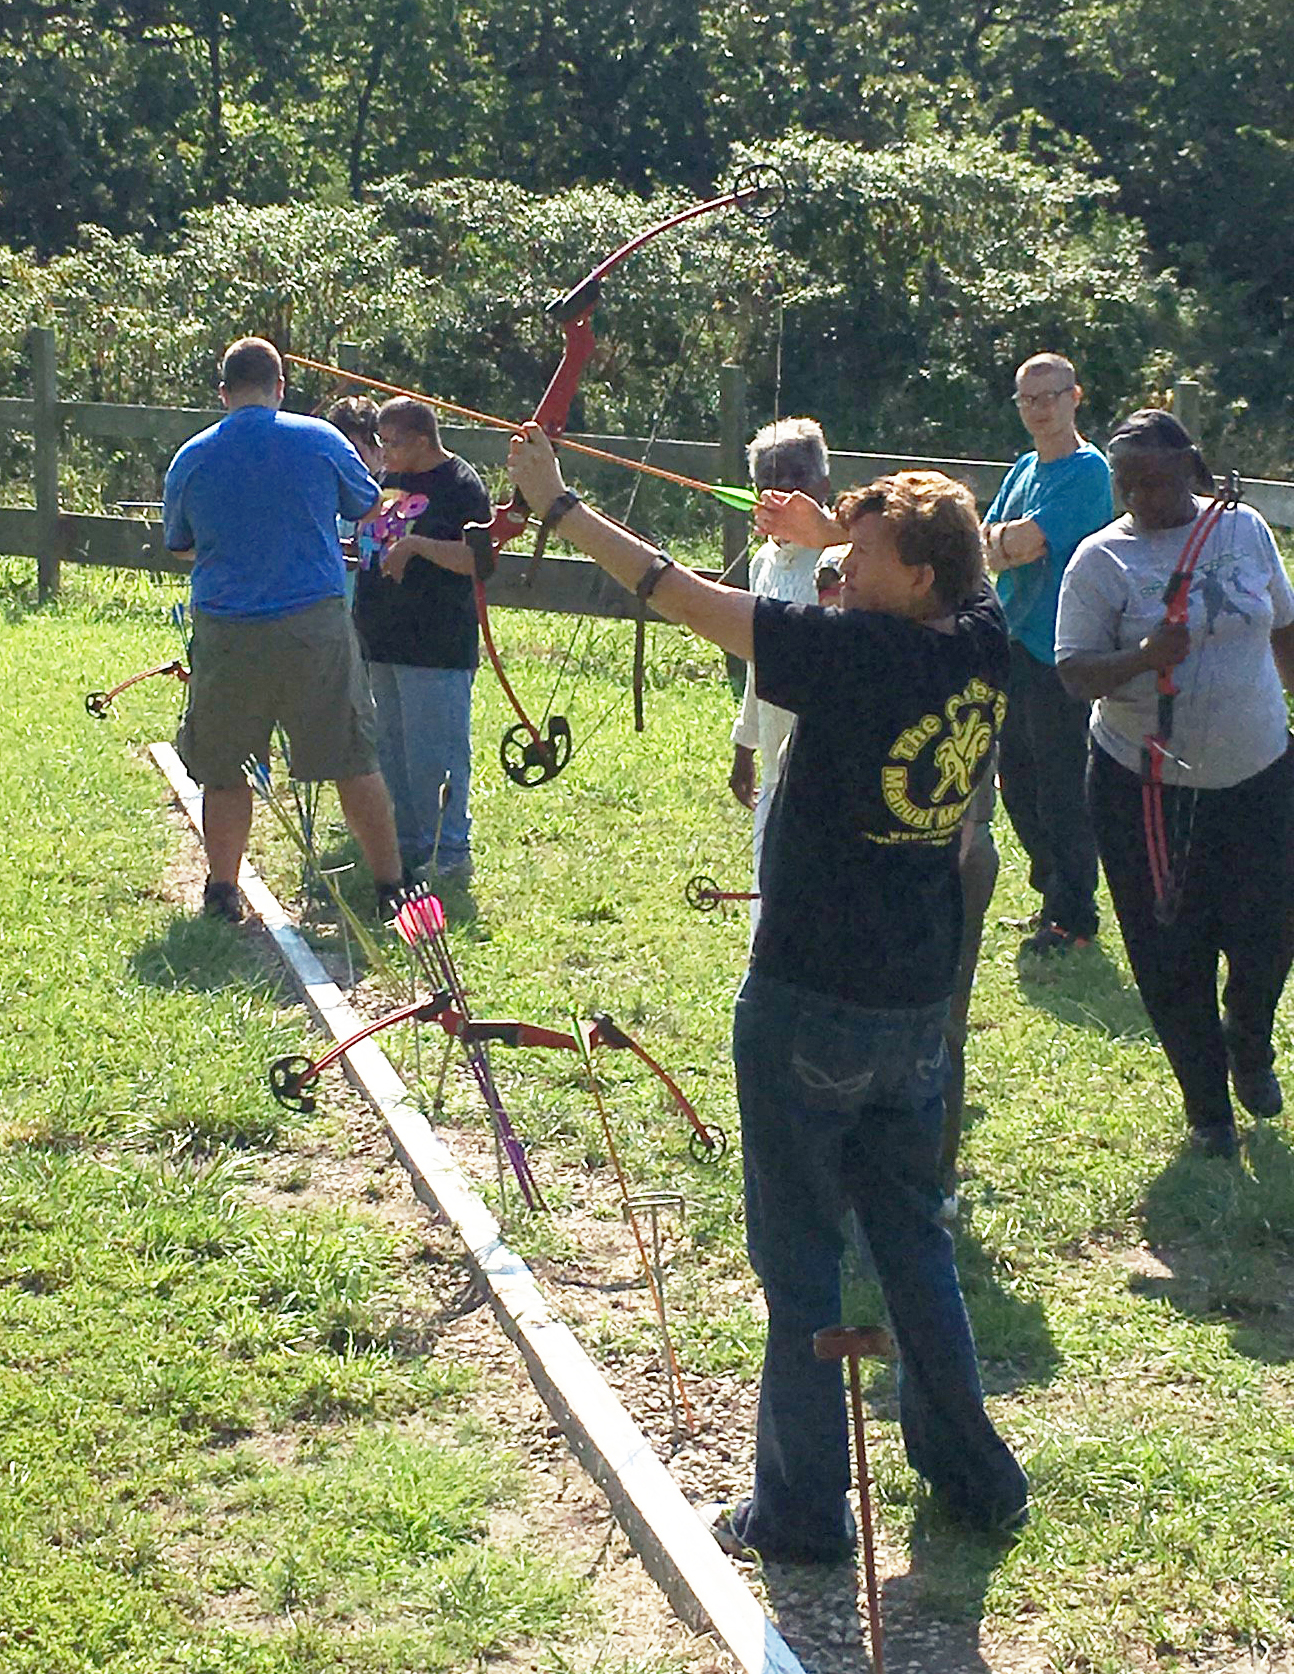 SLI campers doing archery.